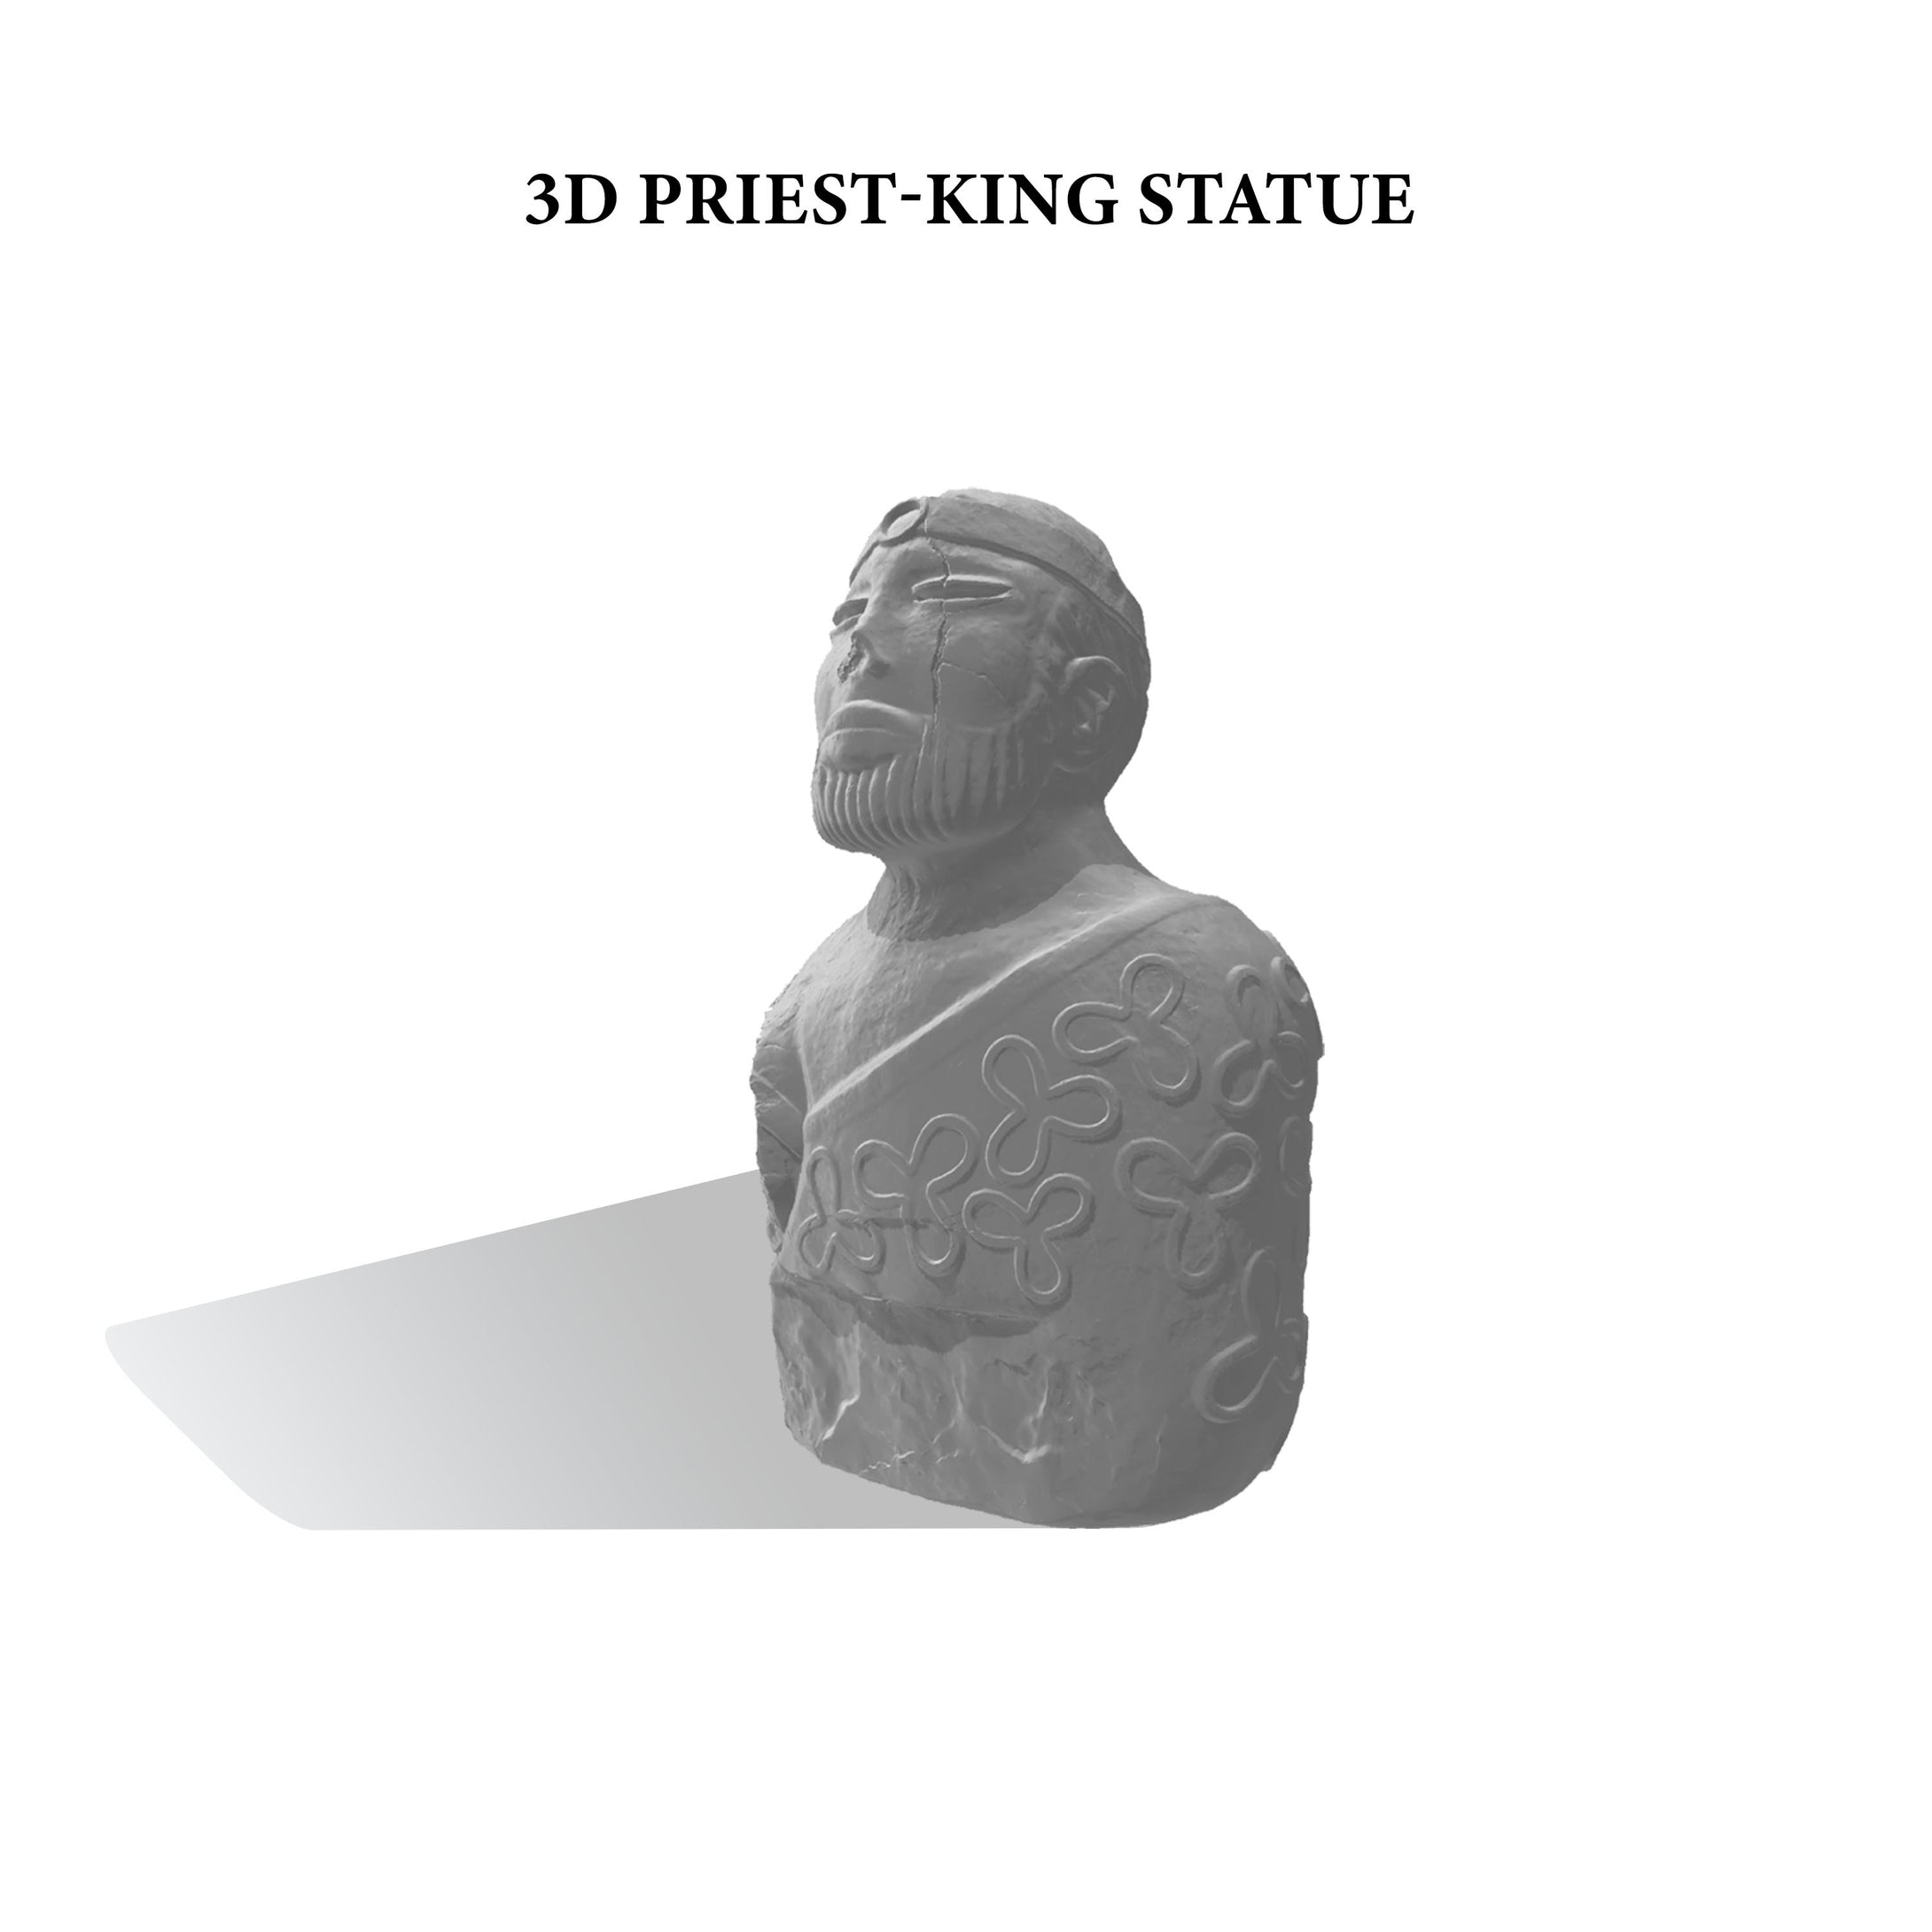 3D PRIEST-KING STATUE